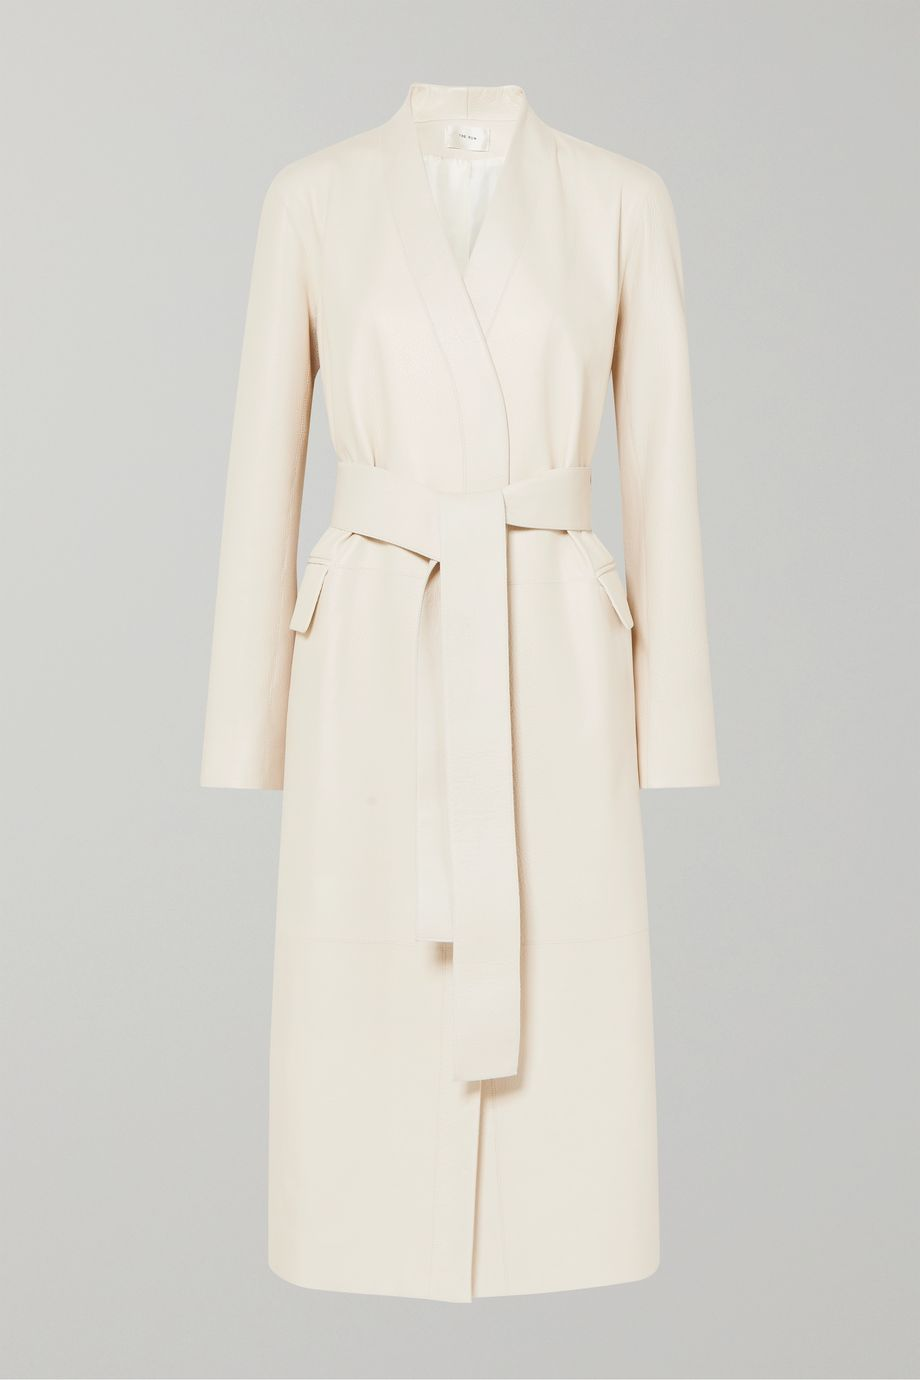 The Row Jumo belted textured-leather coat